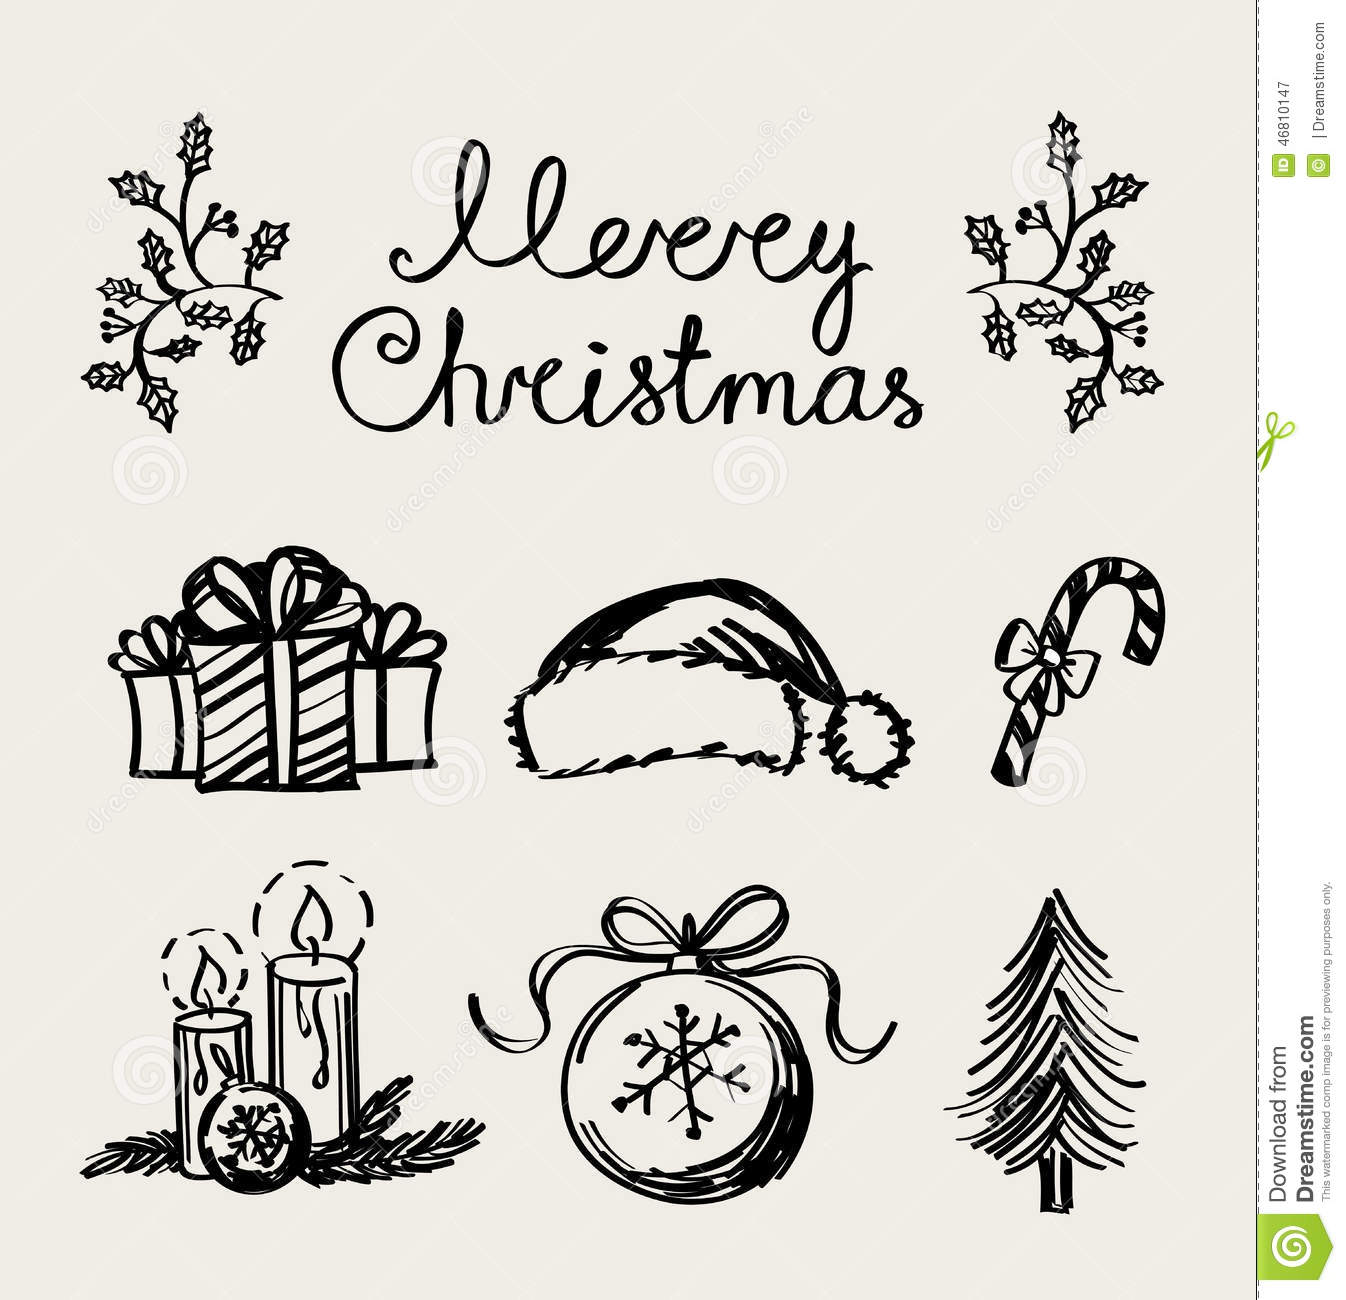 Christmas Tree Decoration Elements: A Set Of Christmas Decoration Elements, Handwriting Stock